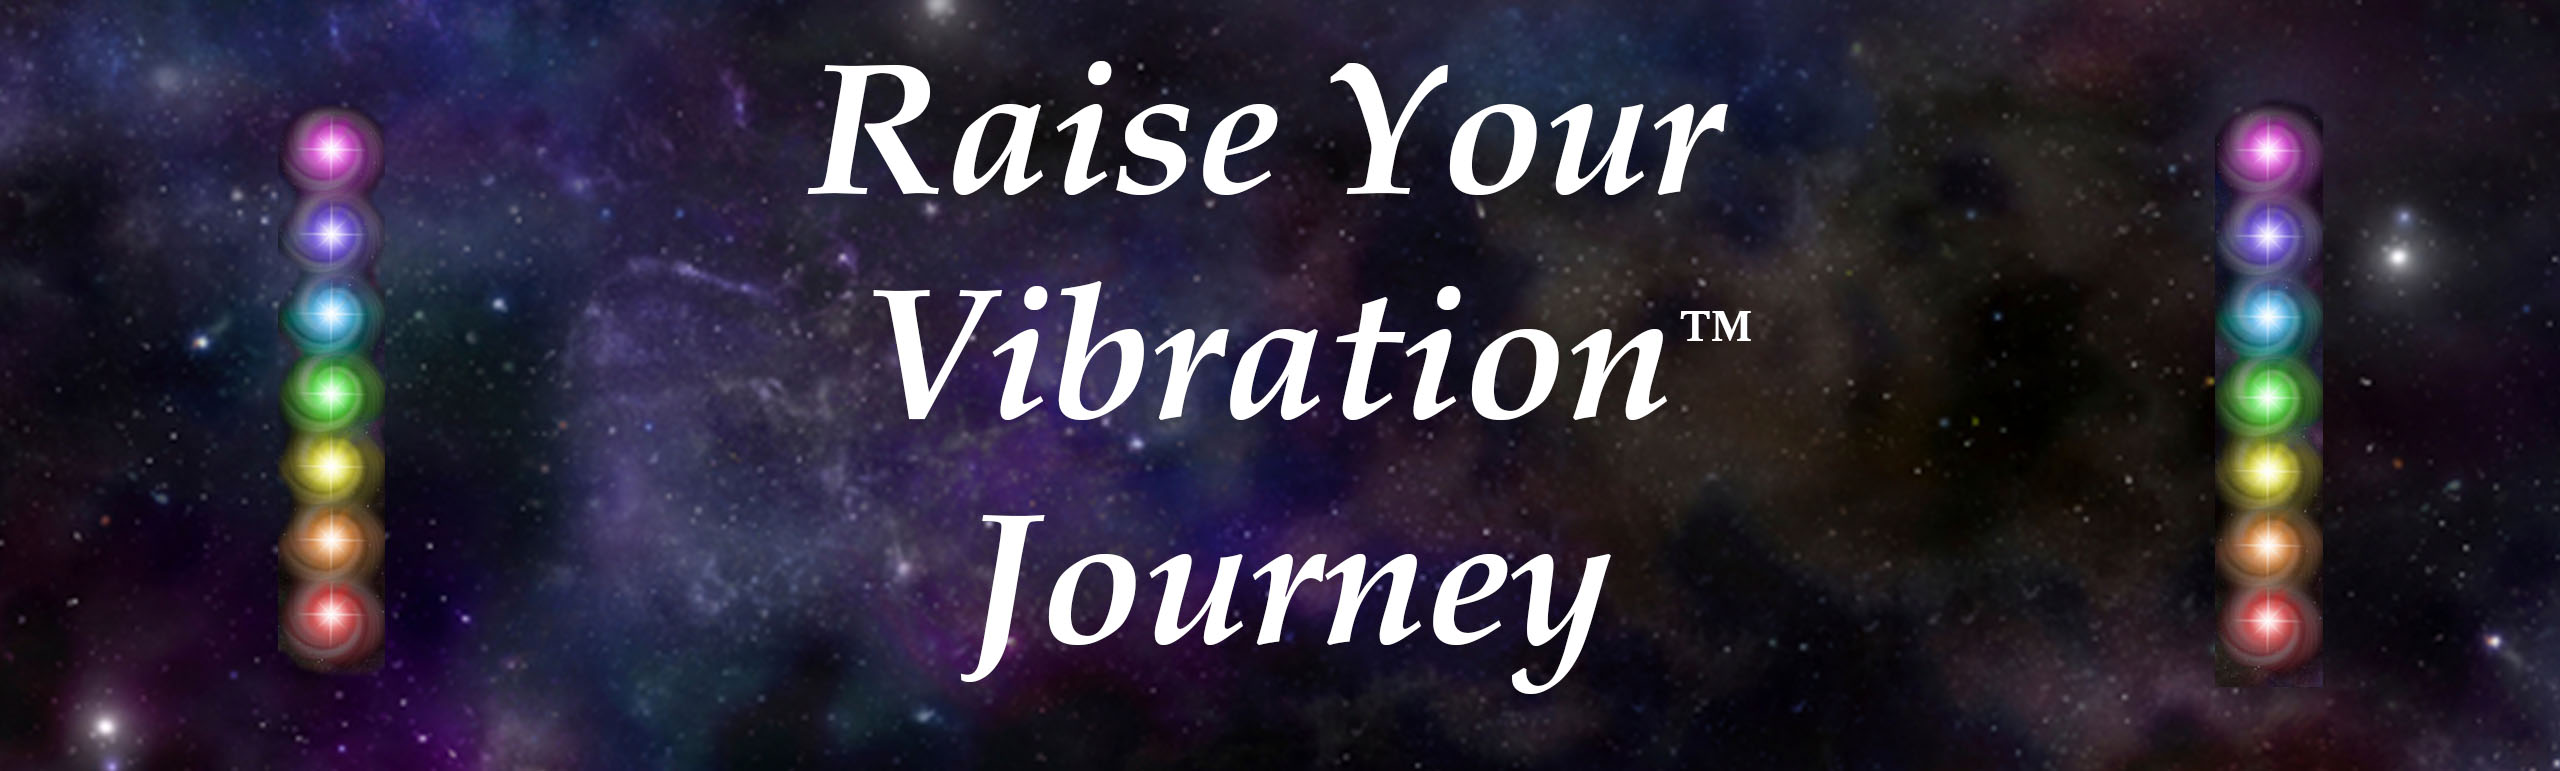 raise your vibration